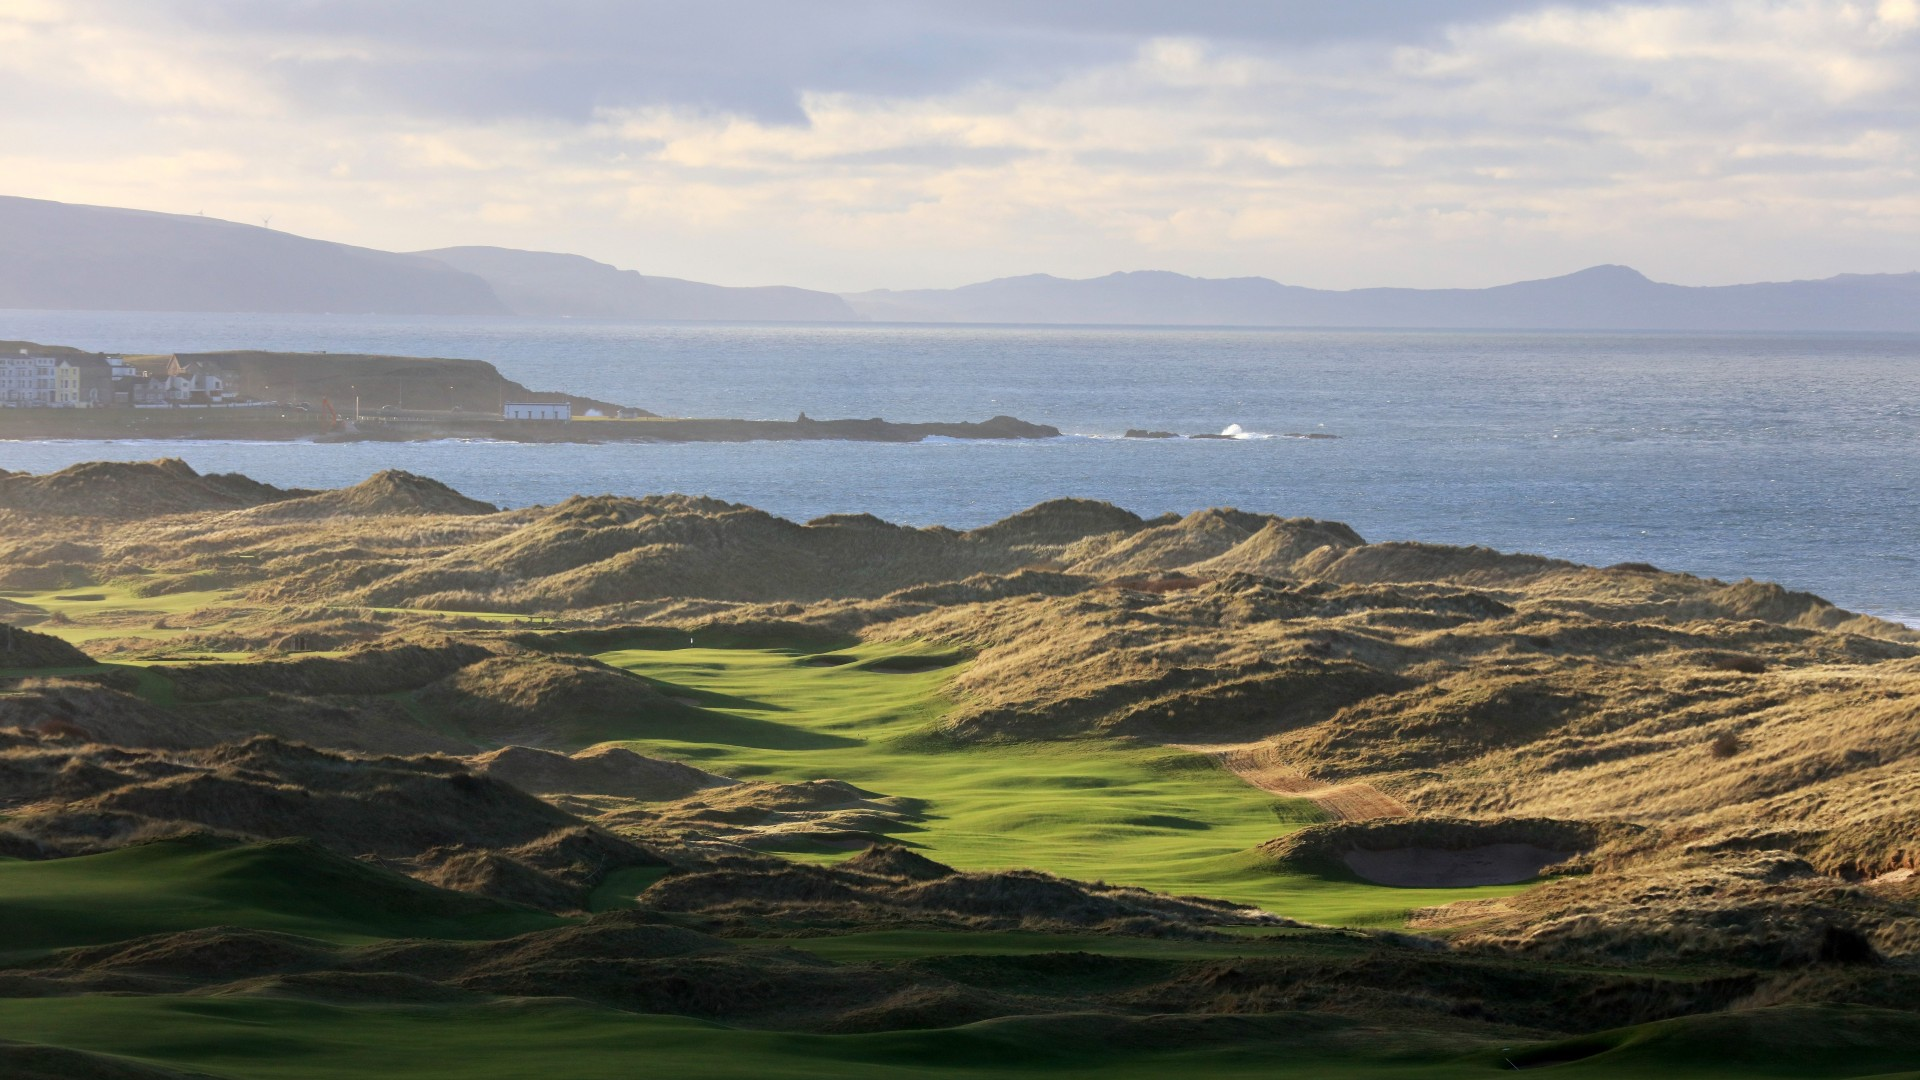 Royal Portrush Golf Club, new 7th hole, The Open 2019